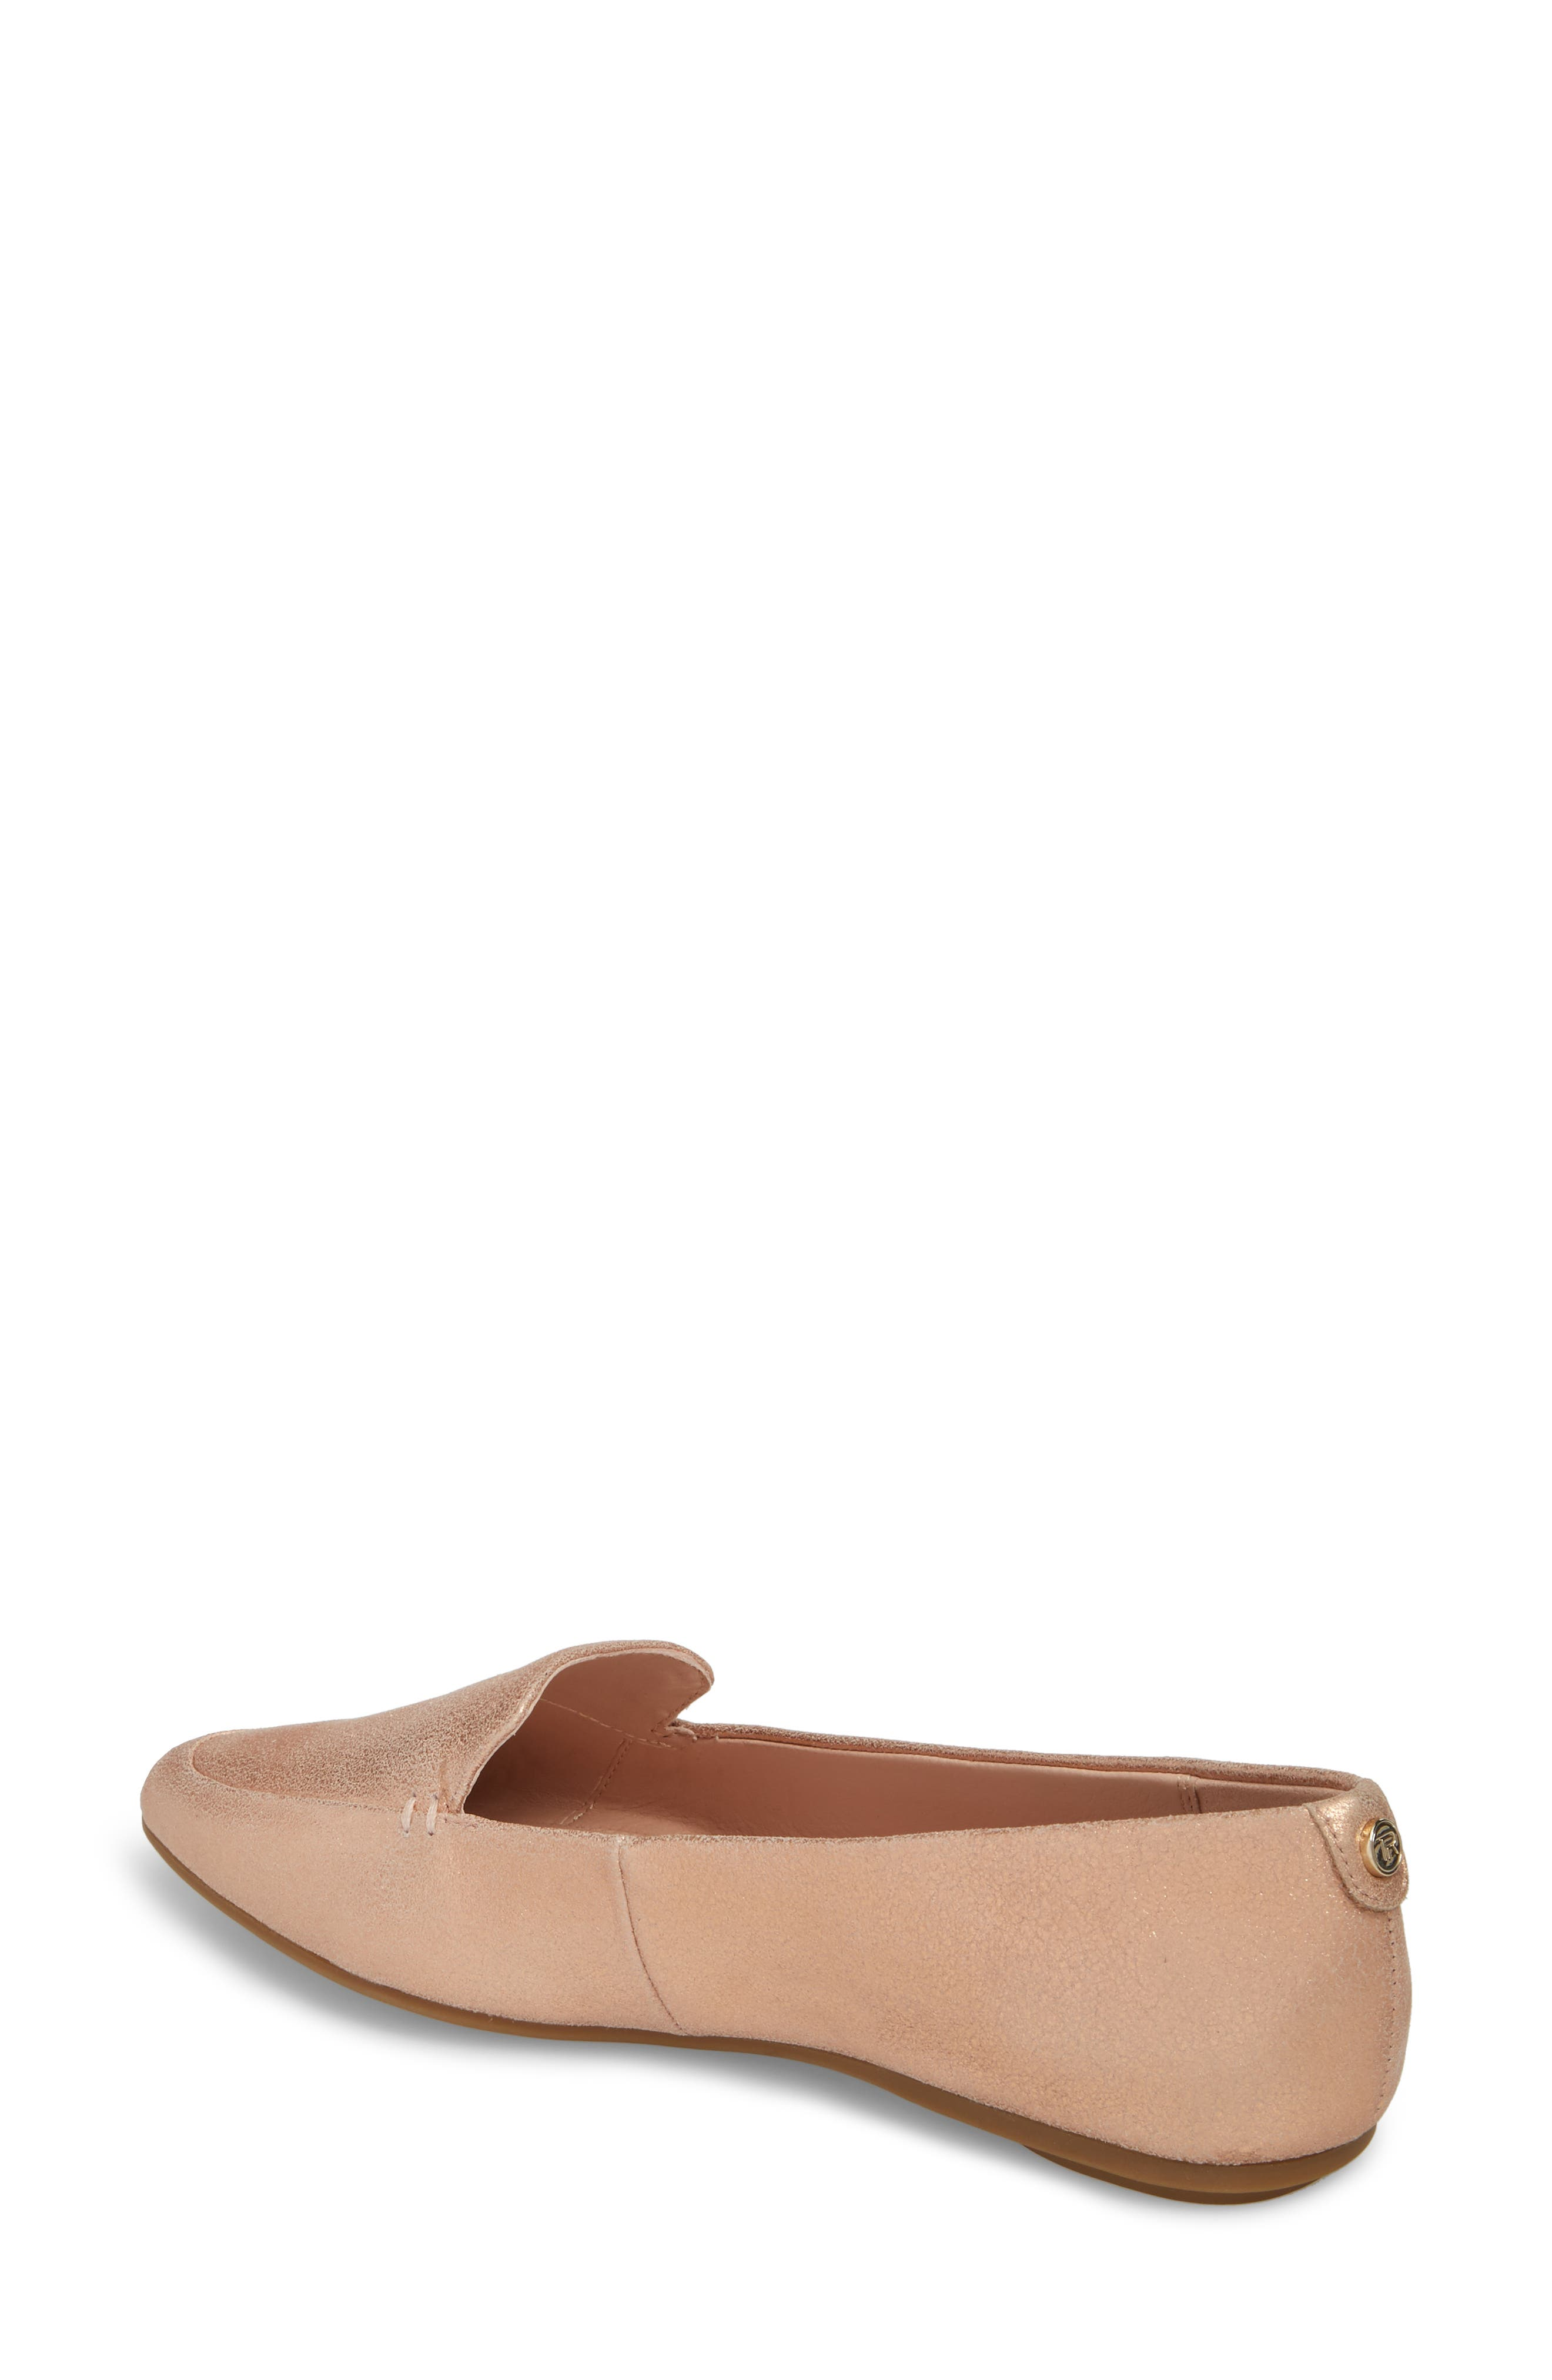 Faye Pointy Toe Loafer,                             Alternate thumbnail 2, color,                             Rose Gold Metallic Leather